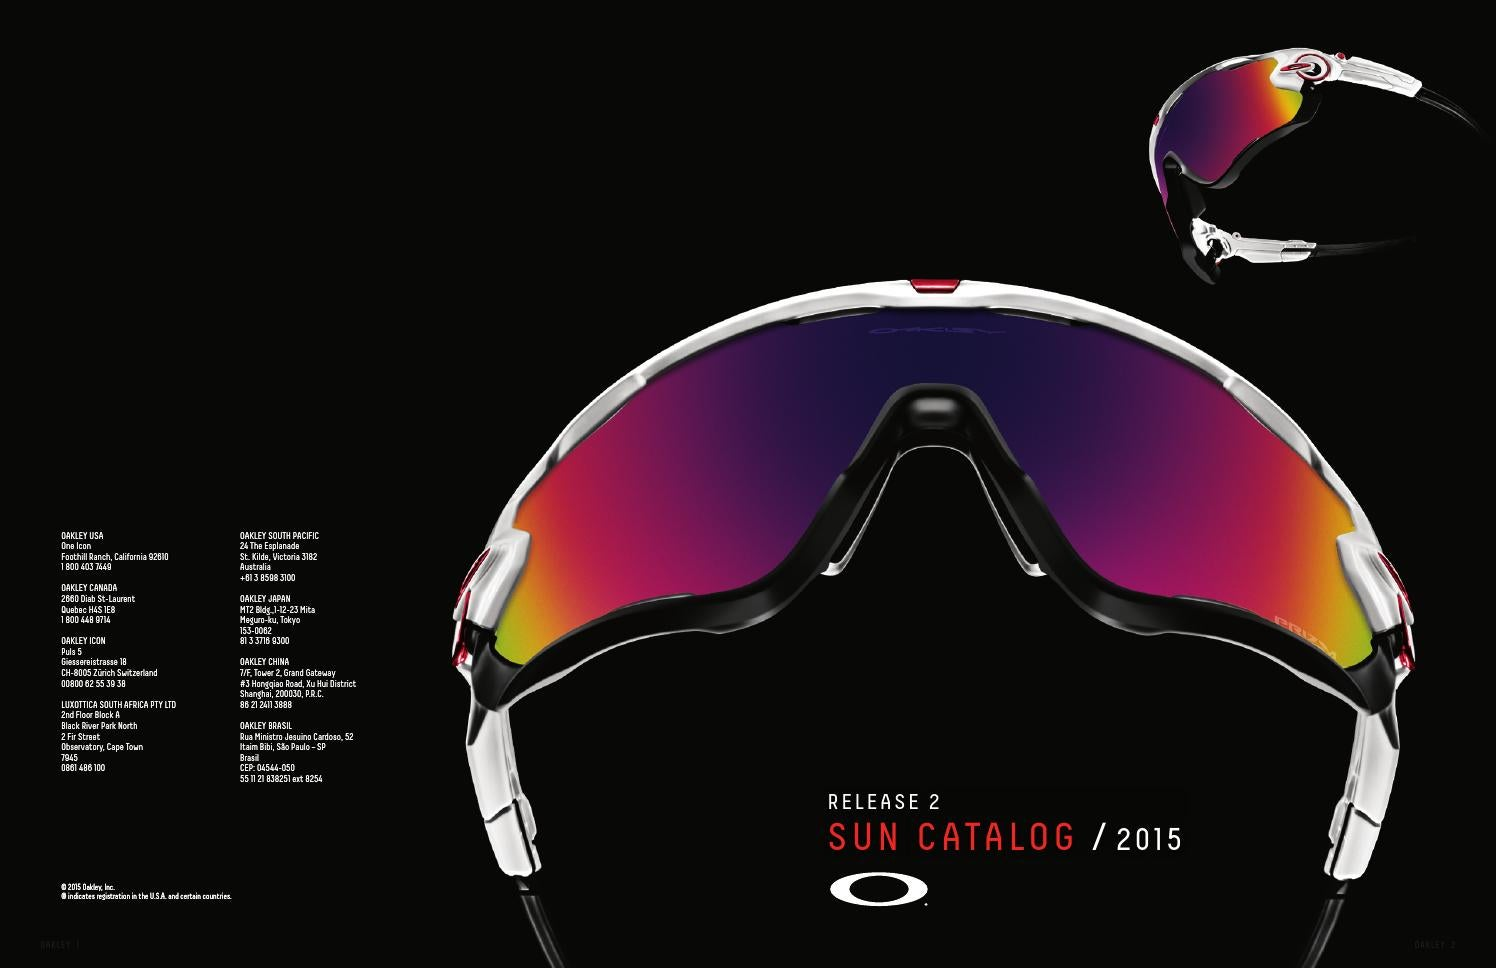 da333bd8eb2 R2 eyewear catalog(1) by Matthew Weisman - issuu